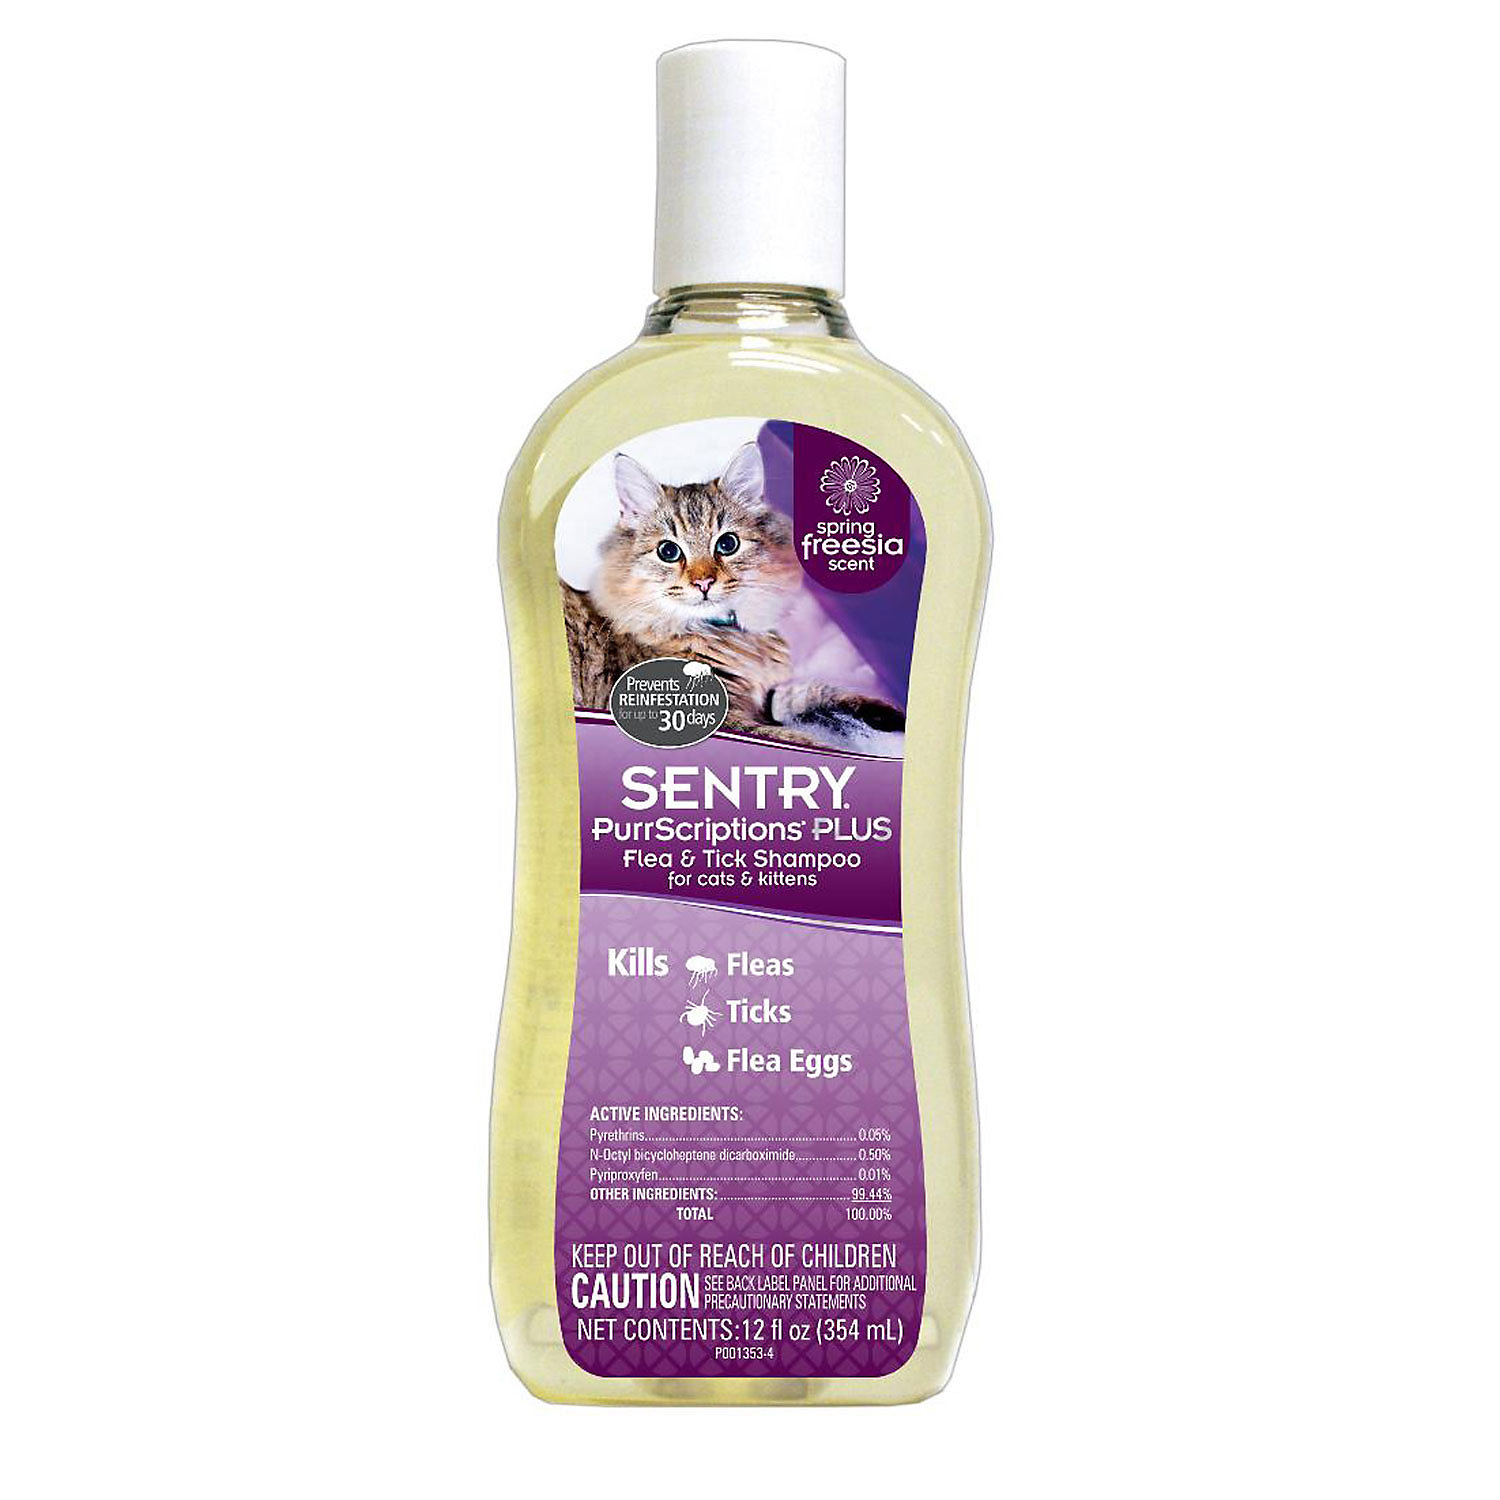 Sentry Purrscriptions Plus Flea Tick Shampoo For Cats Kittens